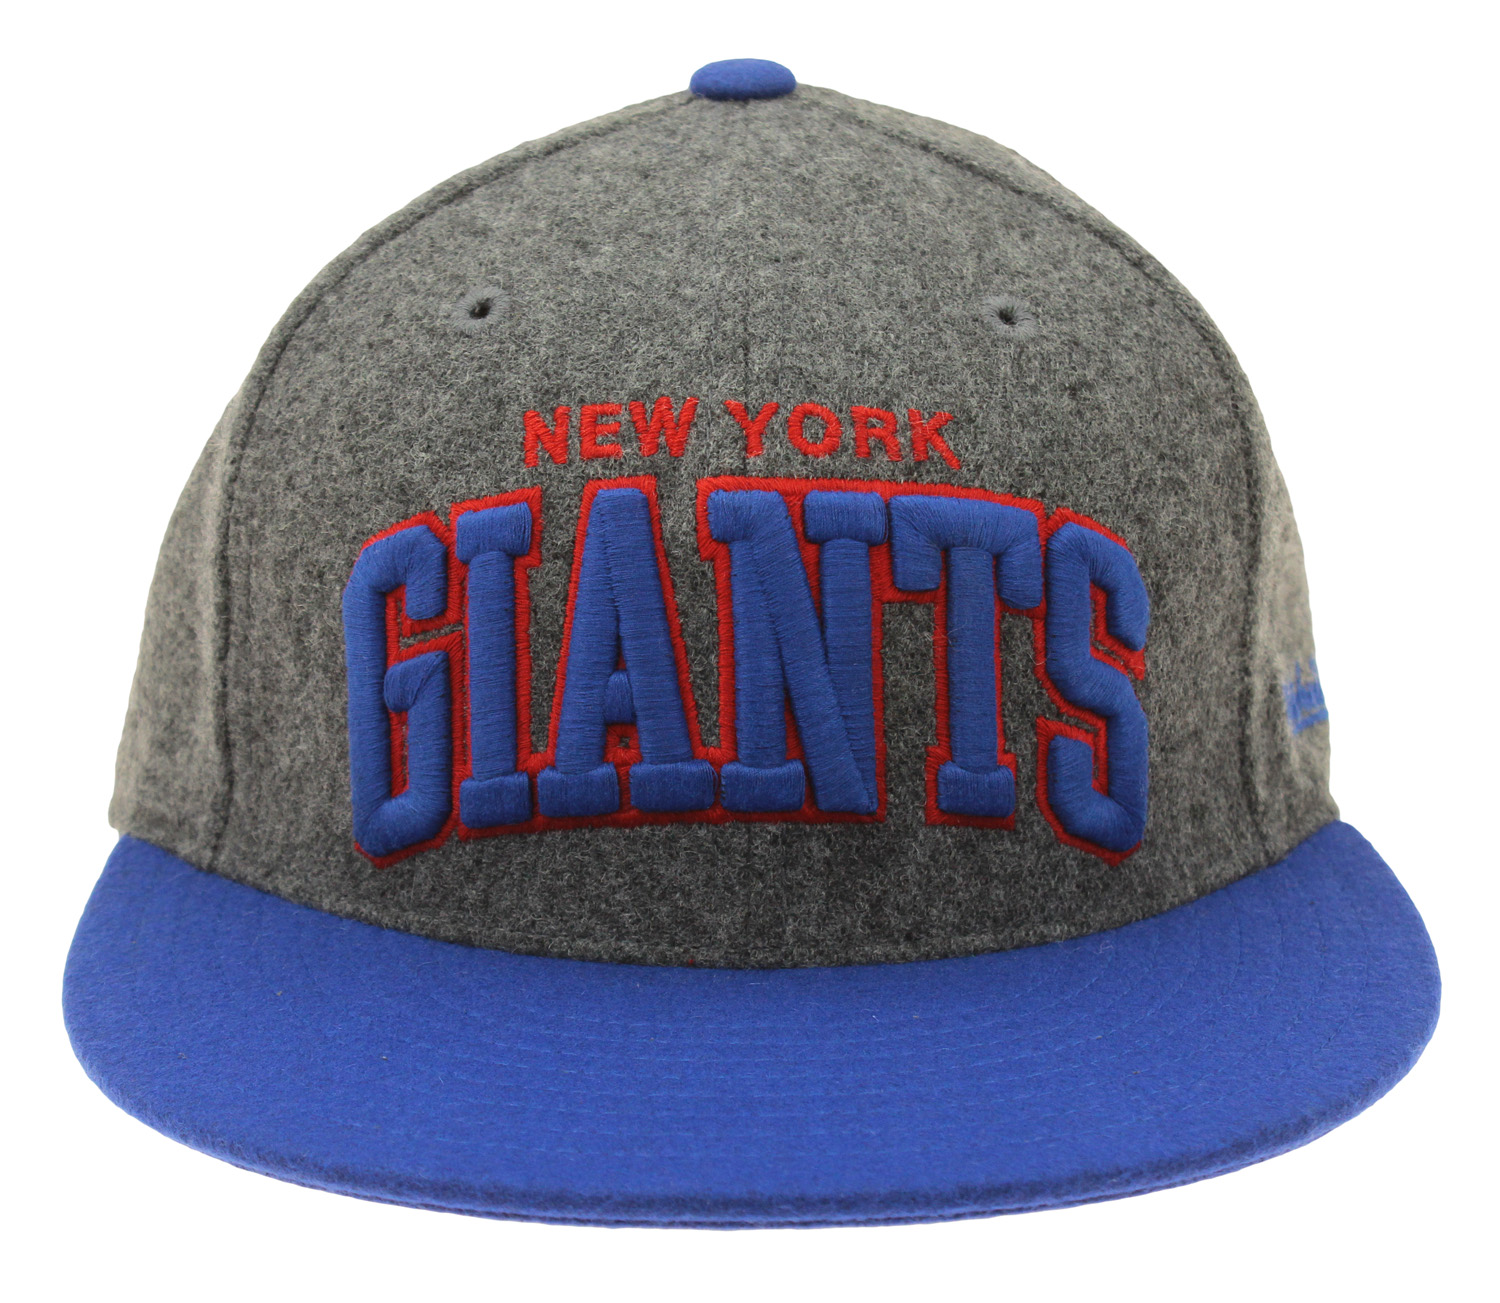 2c279198e Mitchell & Ness NFL Football Mens New York Giants Fitted Arch Melton Cap,  Grey